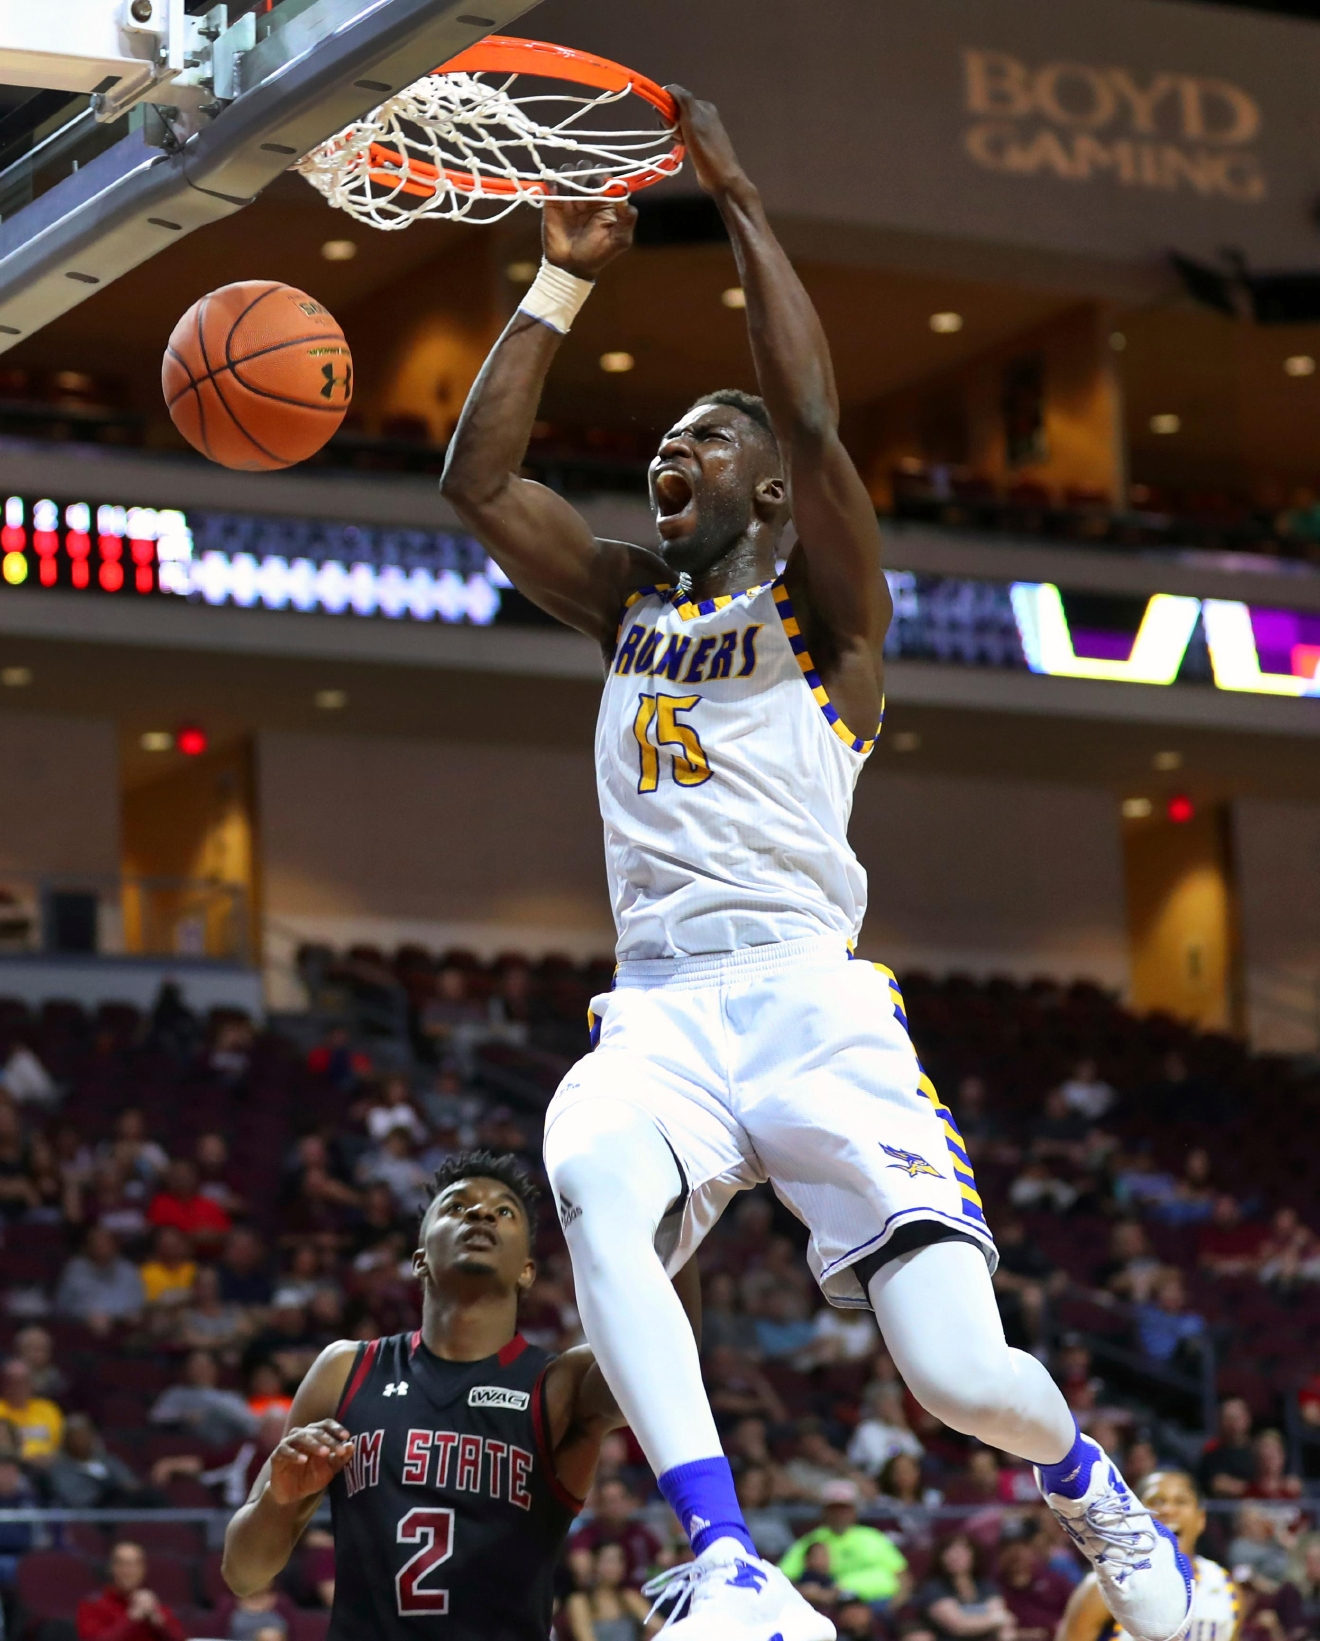 Cal State Bakersfield center Fallou Ndoye dunks over New Mexico State guard Braxton Huggins during the first half of an NCAA college basketball game in the final of the Western Athletic Conference tournament on Saturday, March 11, 2017, in Las Vegas. (AP Photo/L.E. Baskow)